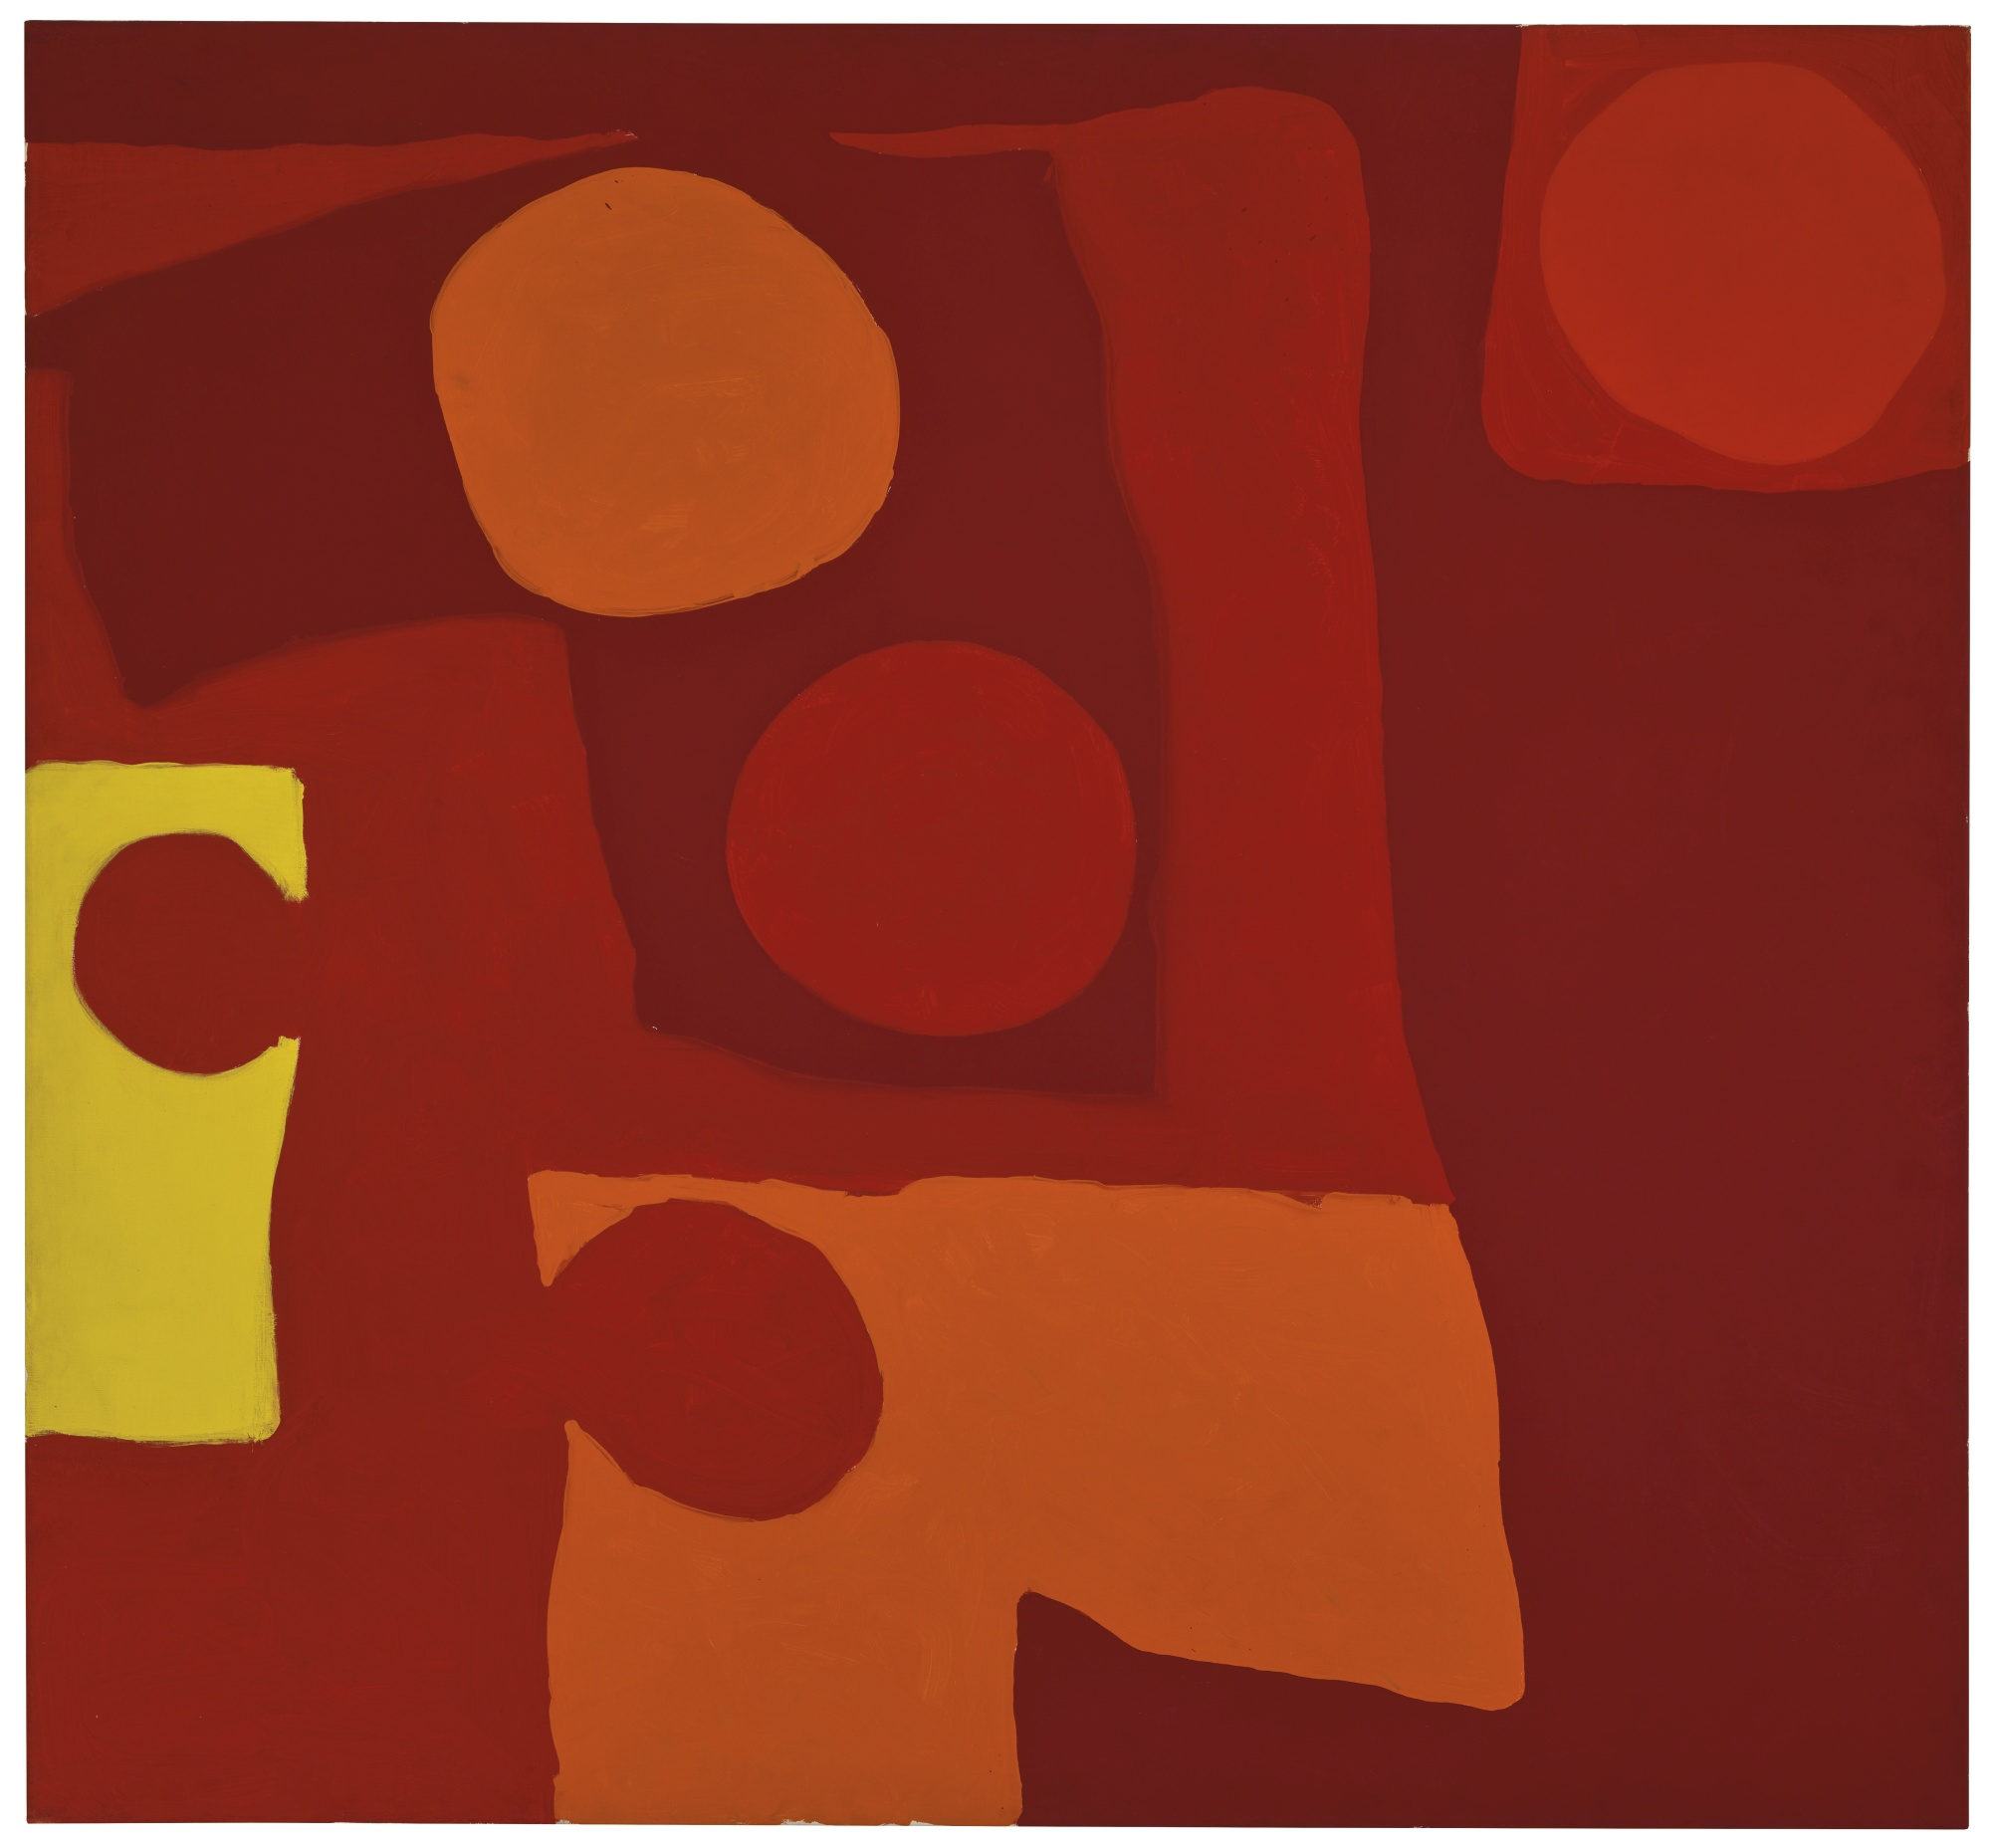 Patrick Heron-Complicated Reds (Five Discs): March 1965-1965